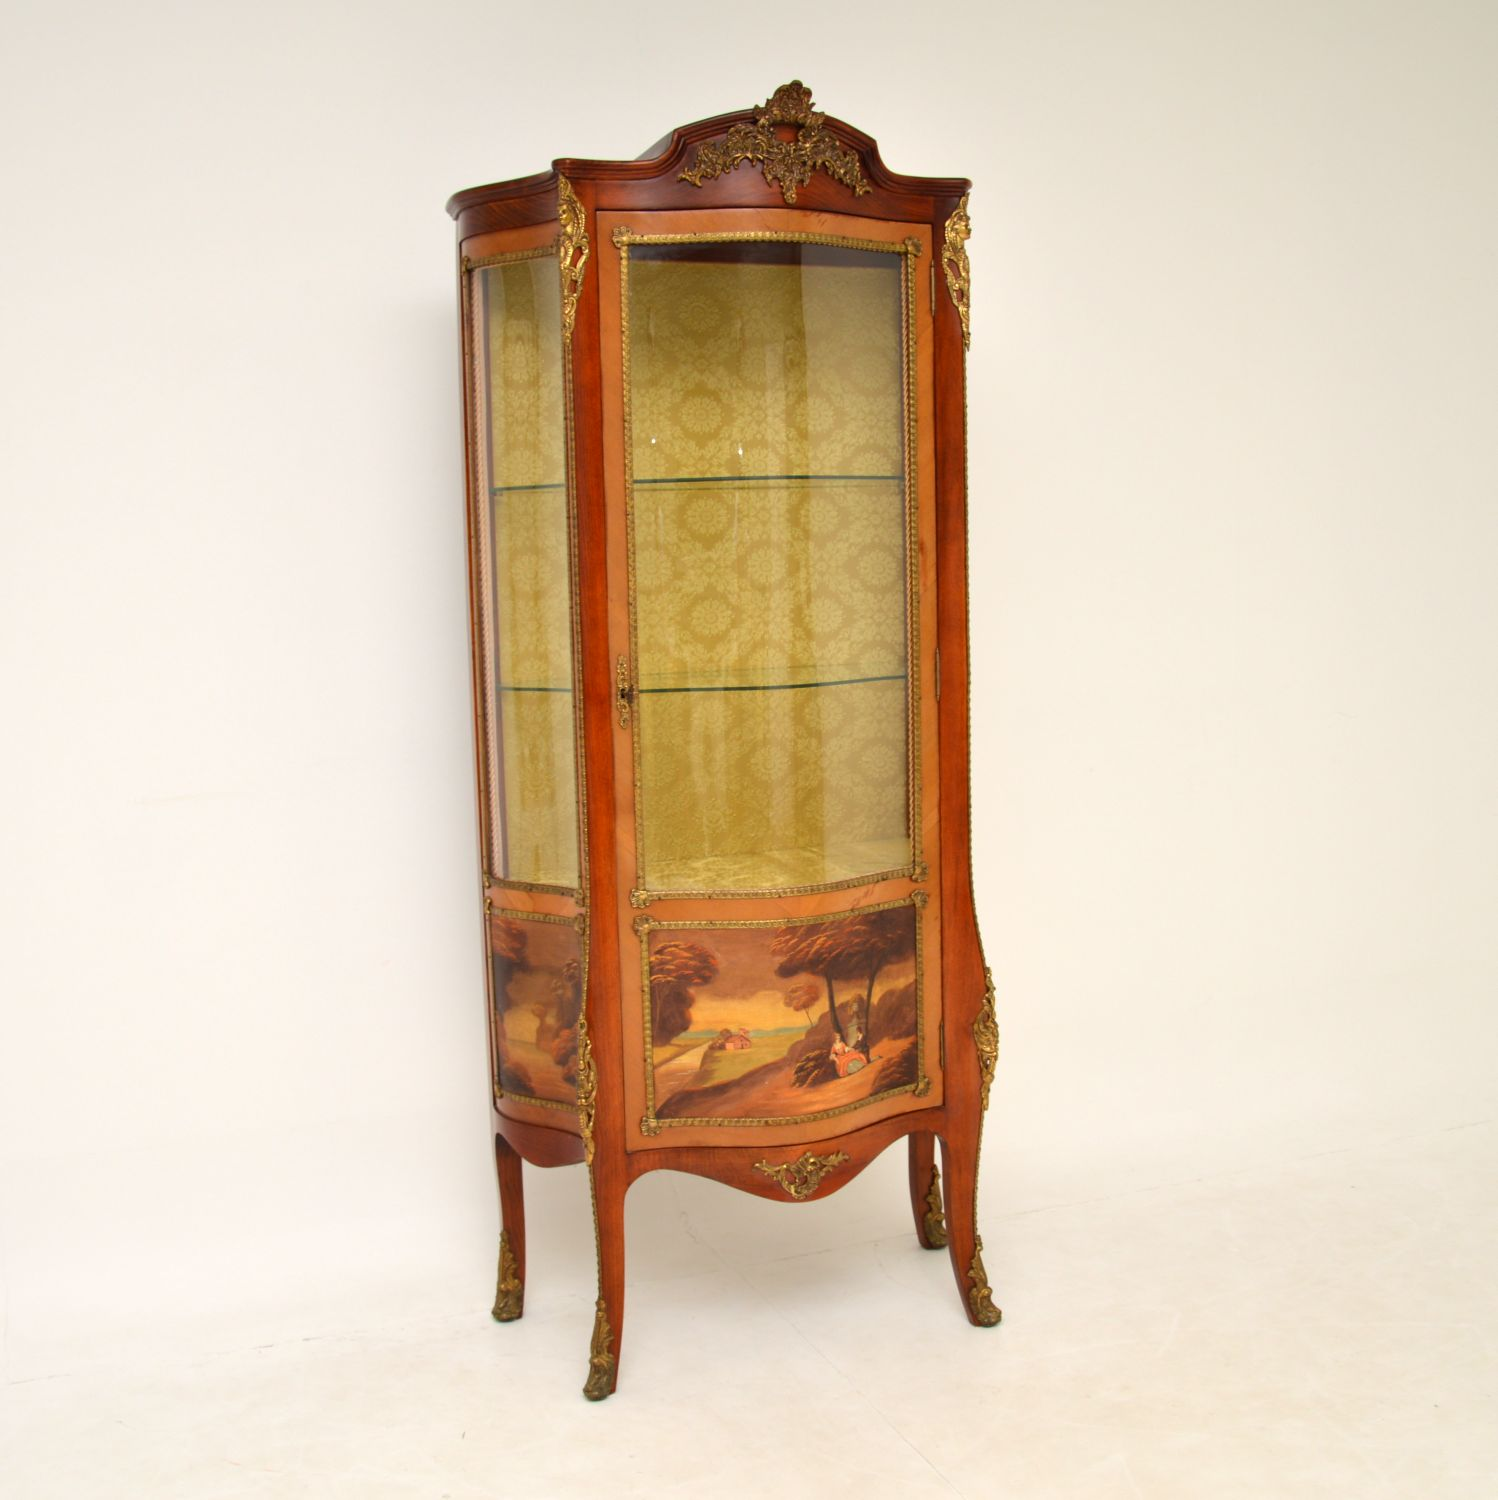 antique french glass fronted vitrine display cabinet